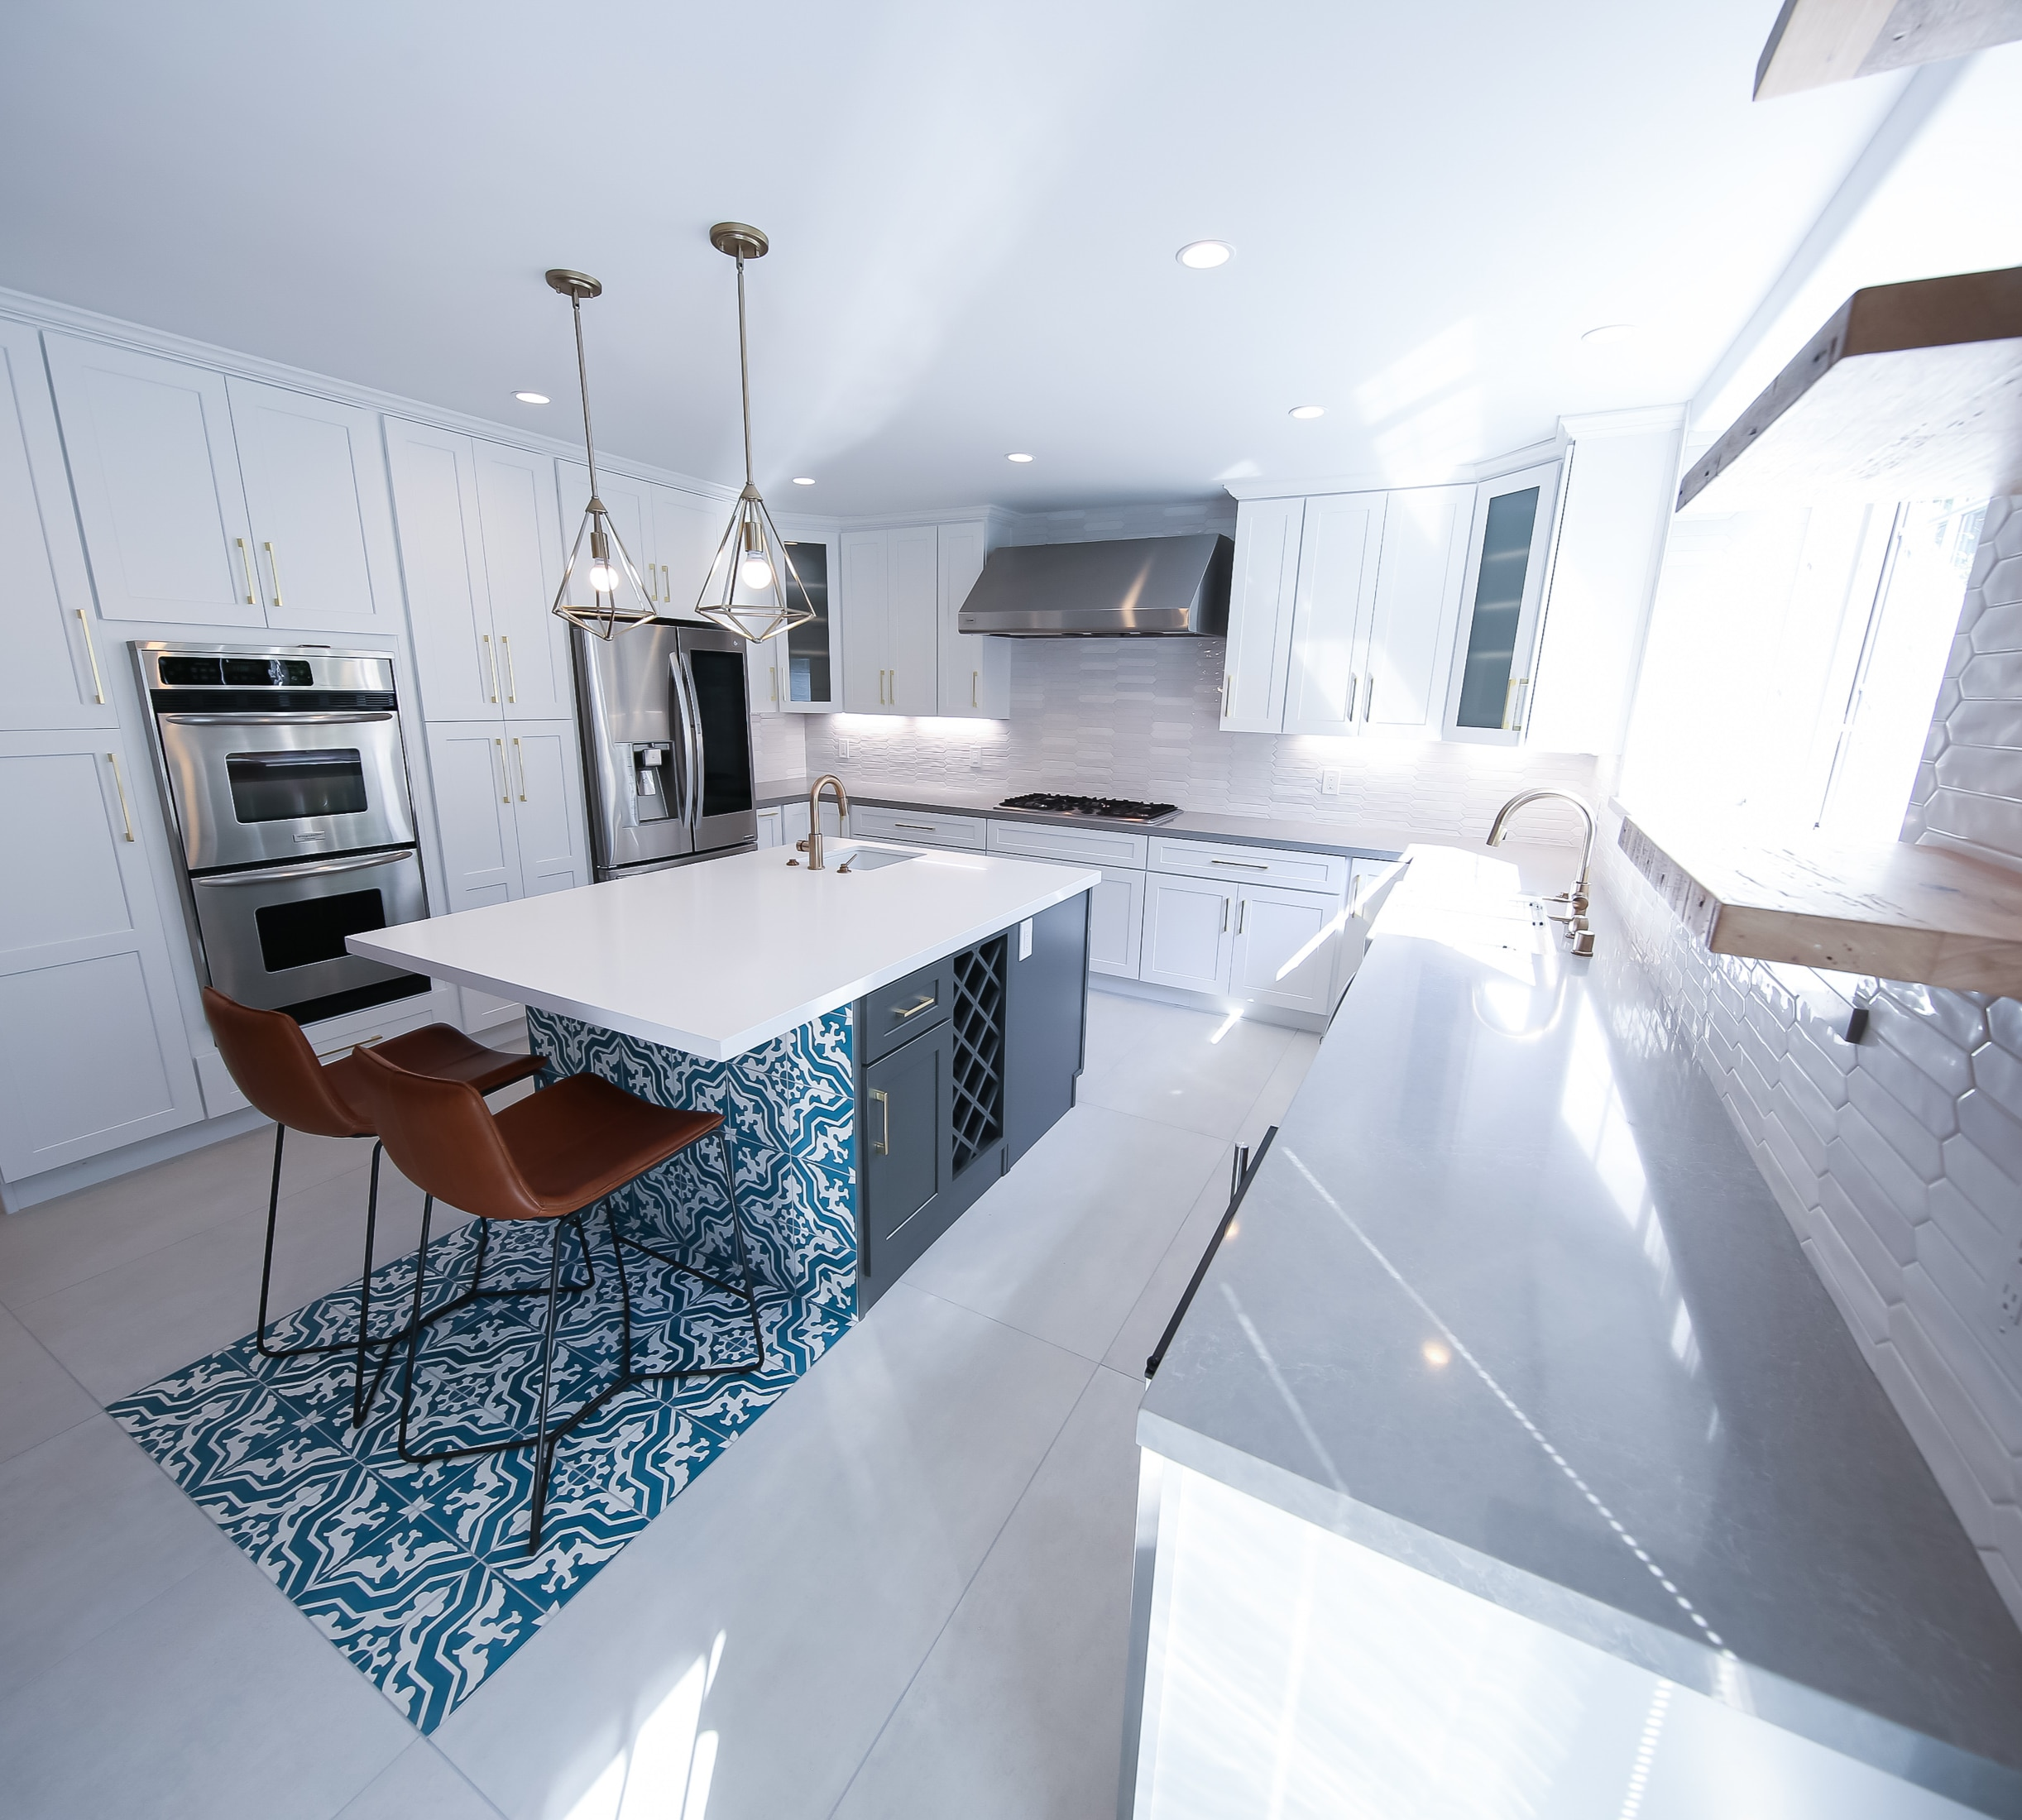 MOROCCAN STYLE KITCHEN AND GENERAL REMODELING, LOS ANGELES